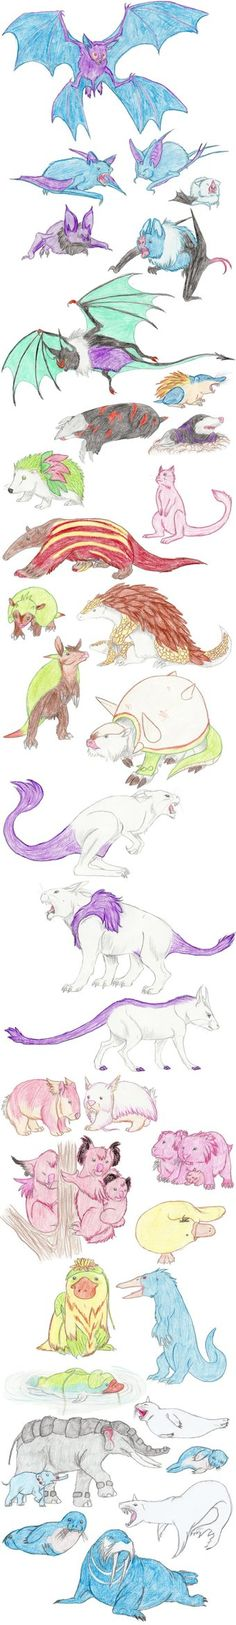 Other Mammalian Pokemon by DragonlordRynn on DeviantArt